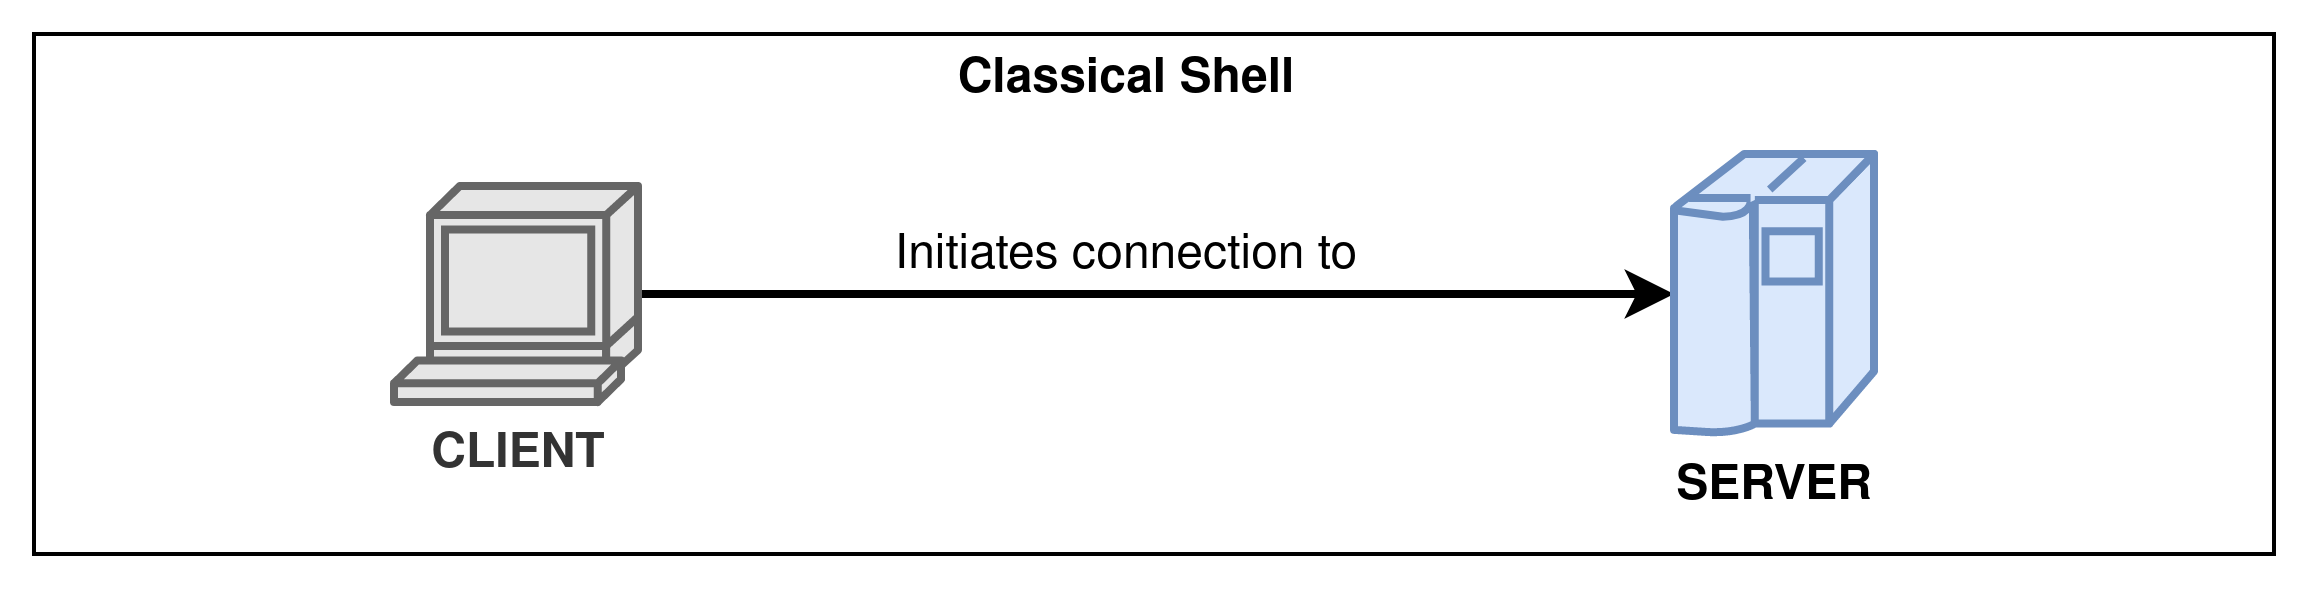 Classical shell connection scheme